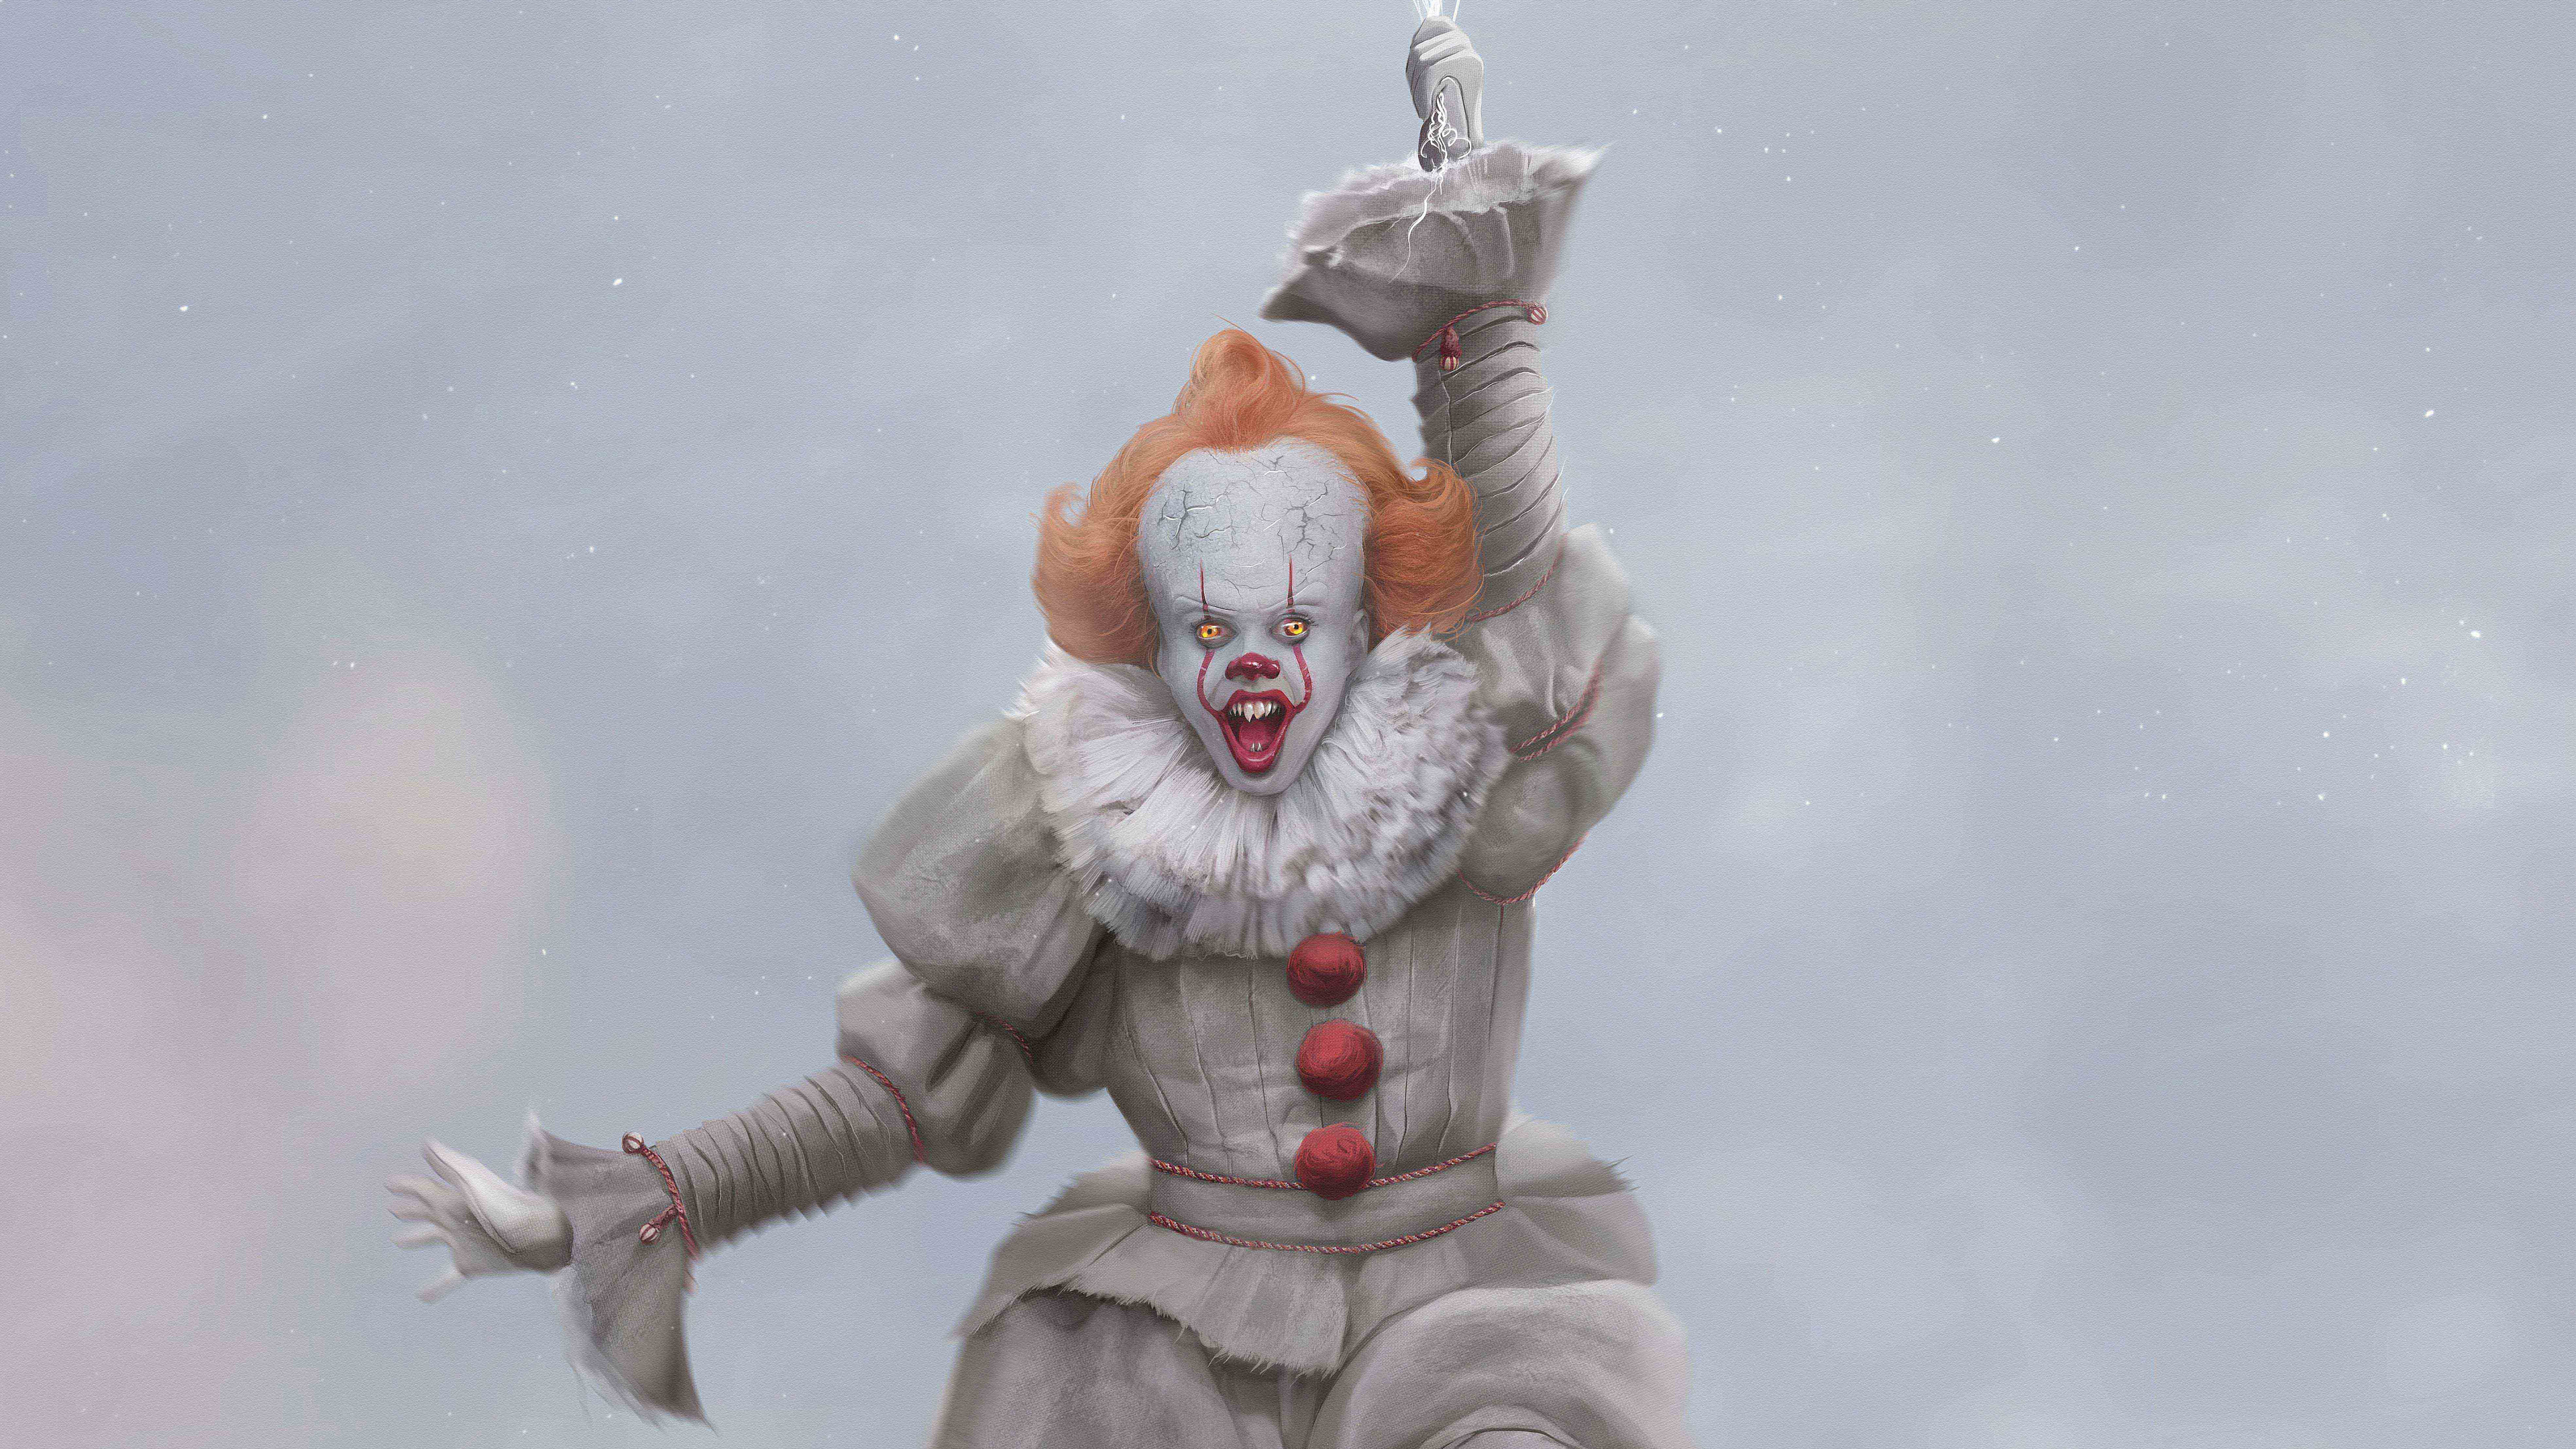 pennywise 1570919638 - Pennywise - pennywise wallpapers, movies wallpapers, it wallpapers, it chapter two wallpapers, hd-wallpapers, 8k wallpapers, 5k wallpapers, 4k-wallpapers, 2019 movies wallpapers